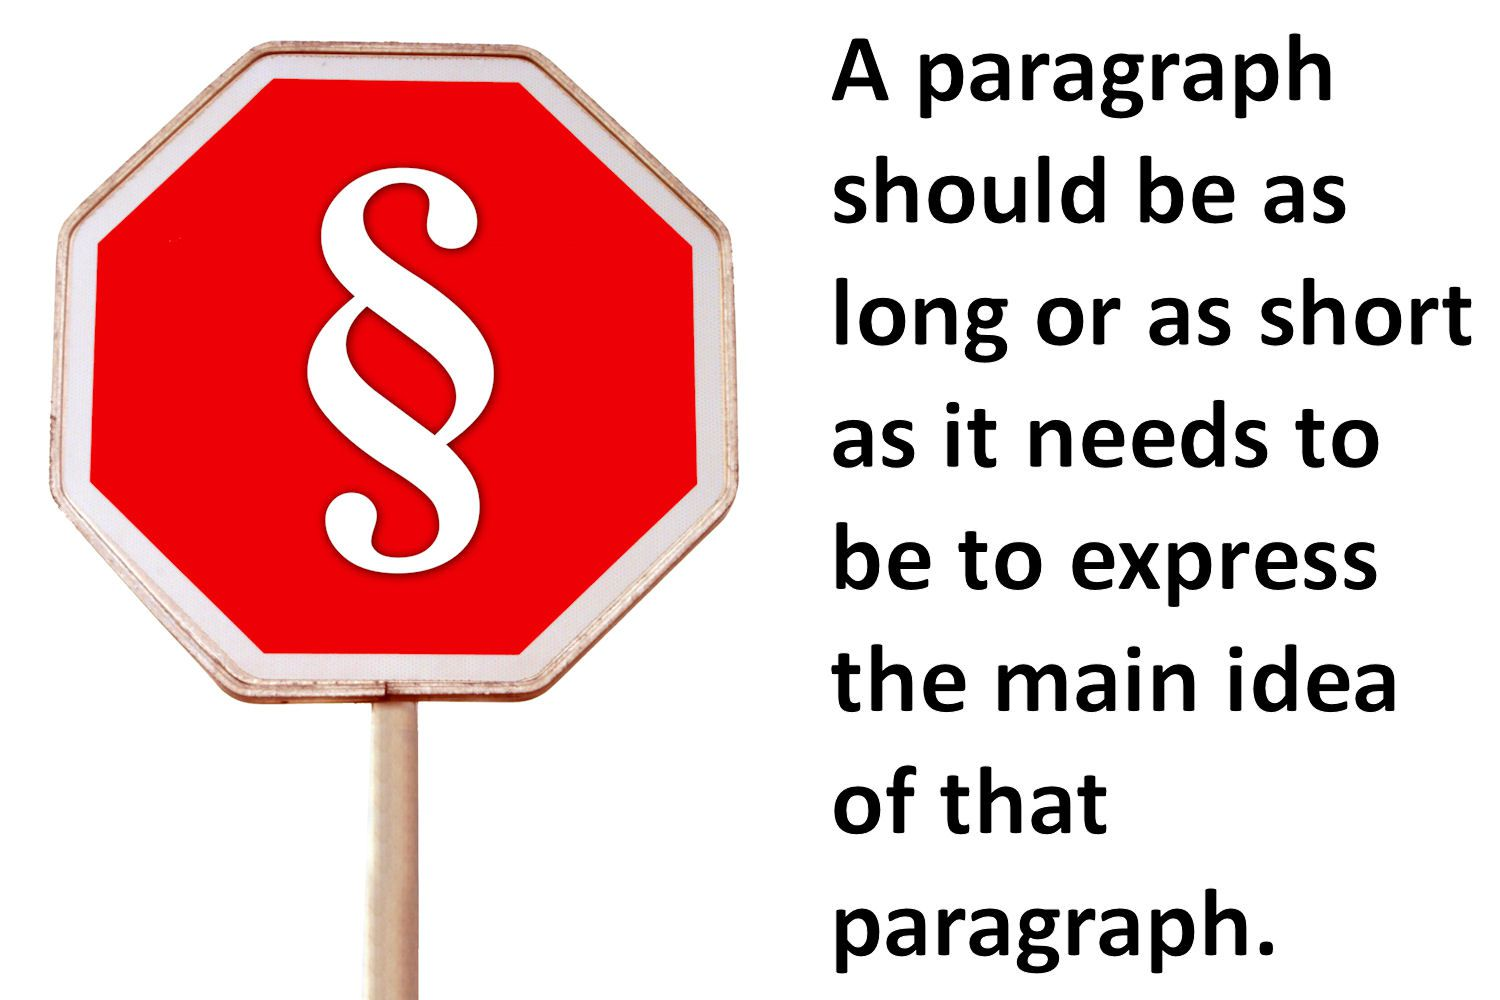 essay how long should a paragraph be How long should a introduction be for a 5 paragraph essay (generally, a paragraph should be at least four sentences) longer essays often require longer paragraphs that contain more information the basic rule for determining paragraph length is to keep each paragraph to only one main idea.